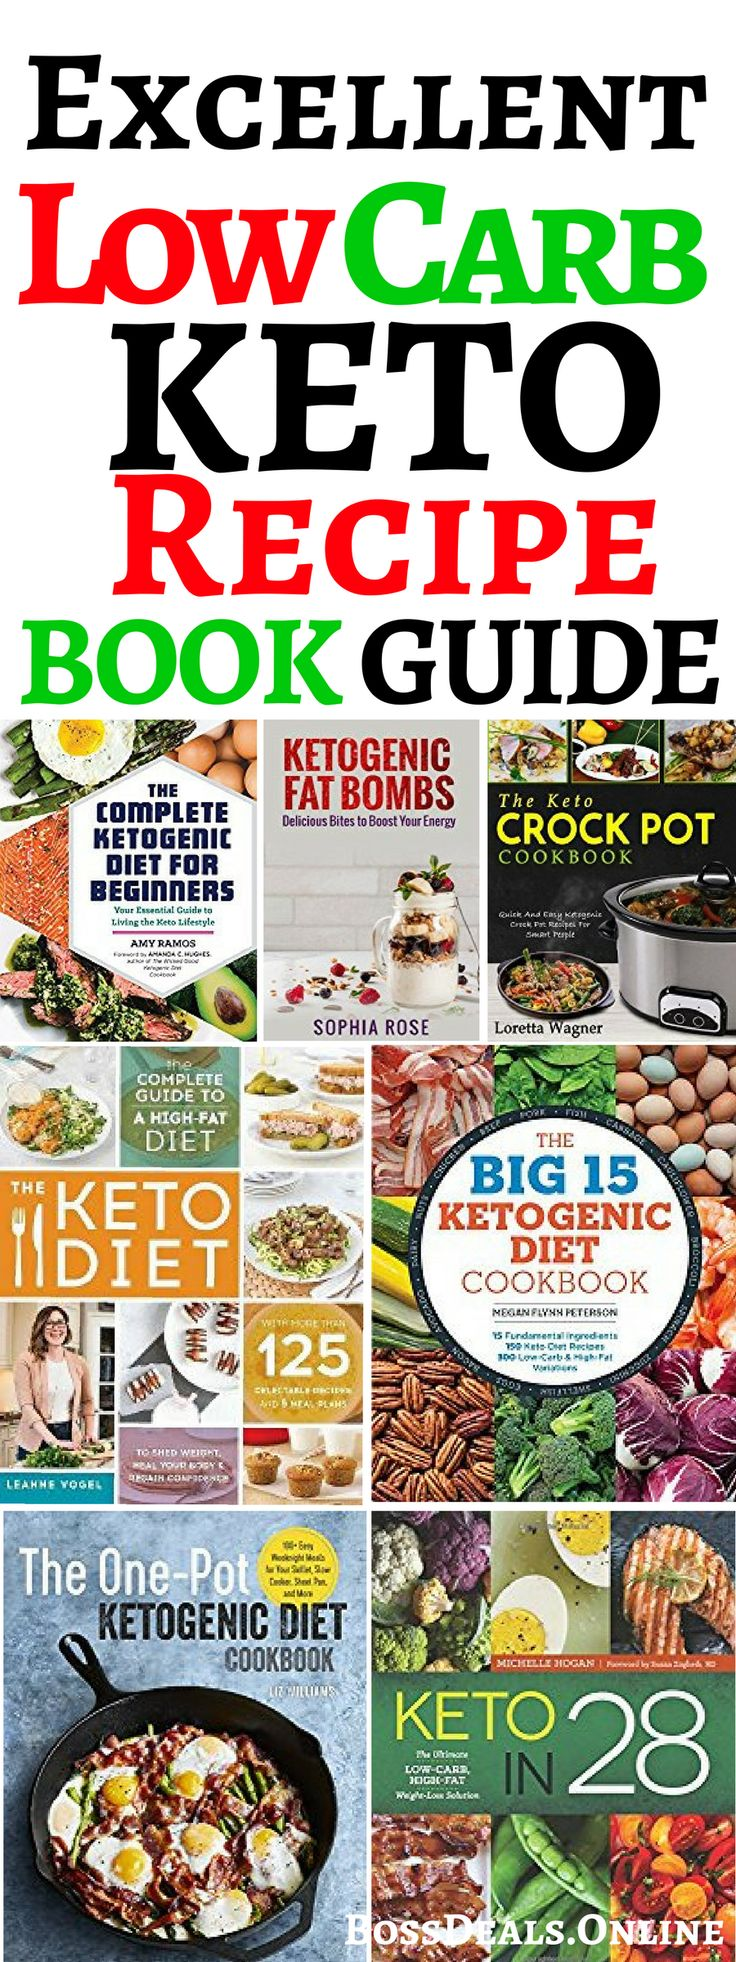 The Best Low Carb Keto recipes with some of the best tasting low carb ketogenic diet weight loss foods & meals. This article has some of the best super delicious Low Carb Keto and High-Fat diet Recipes. The Low Carb Keto recipes with some of the best tast